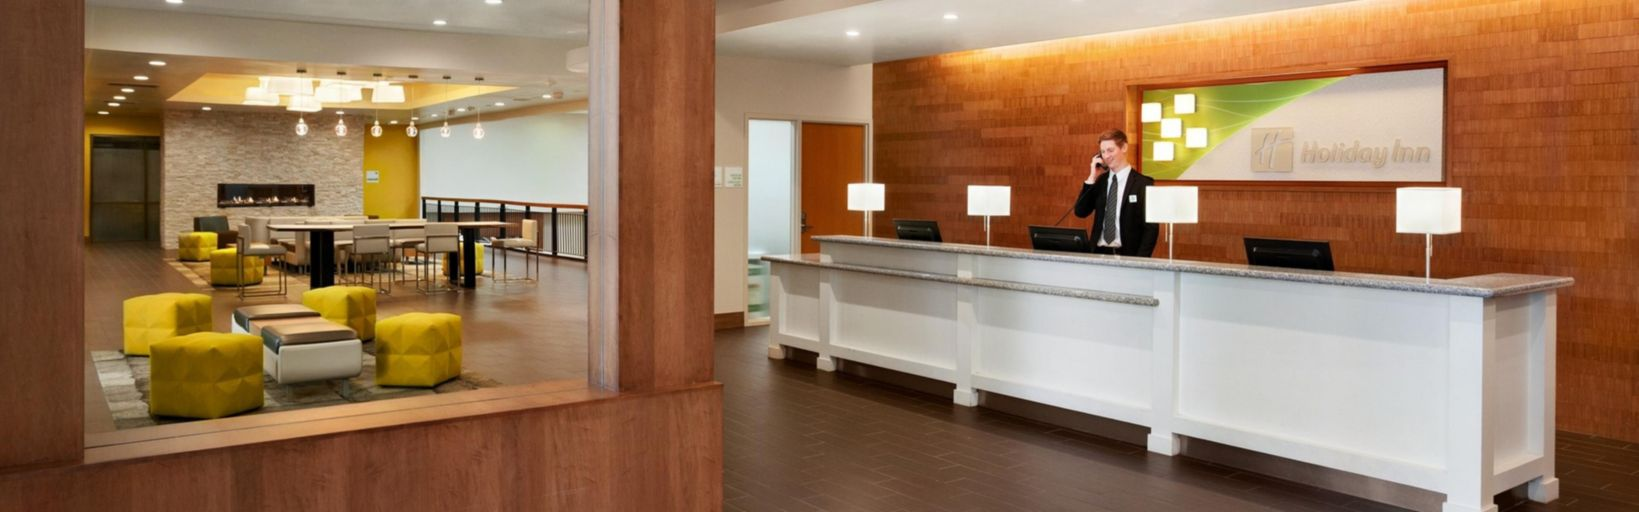 Holiday Inn Portland-Airport (I-205) Hotel by IHG